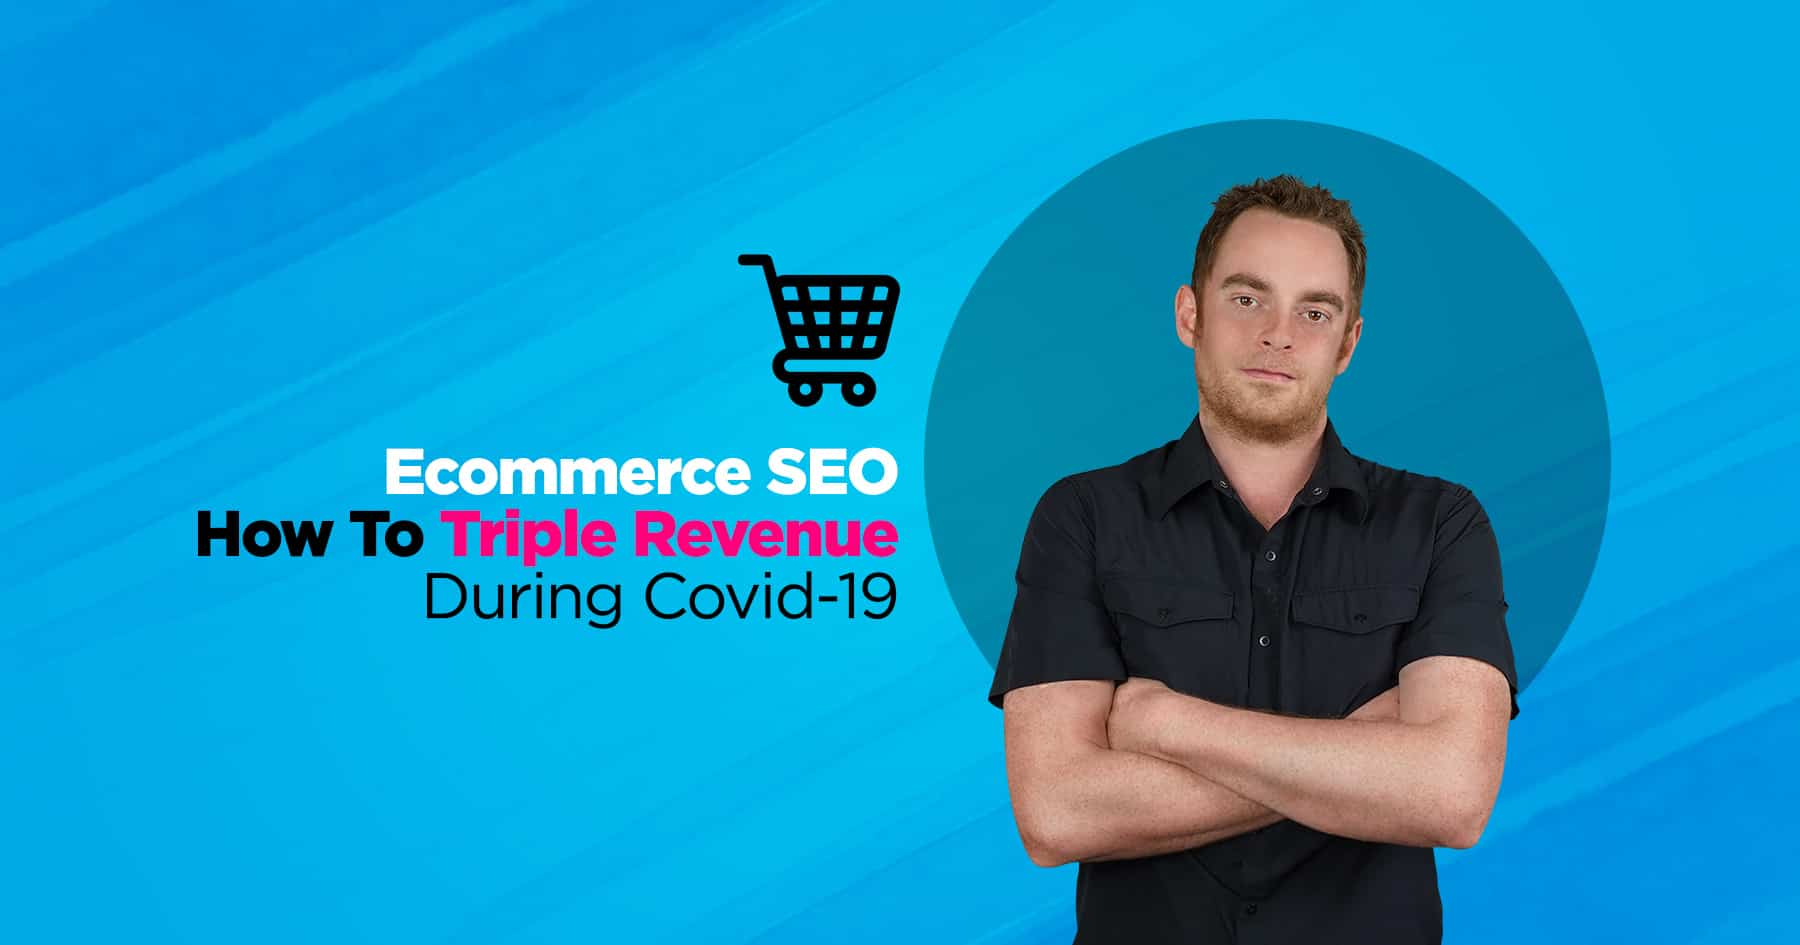 Ecommerce SEO Case Study: How To Triple Revenue During Covid-19